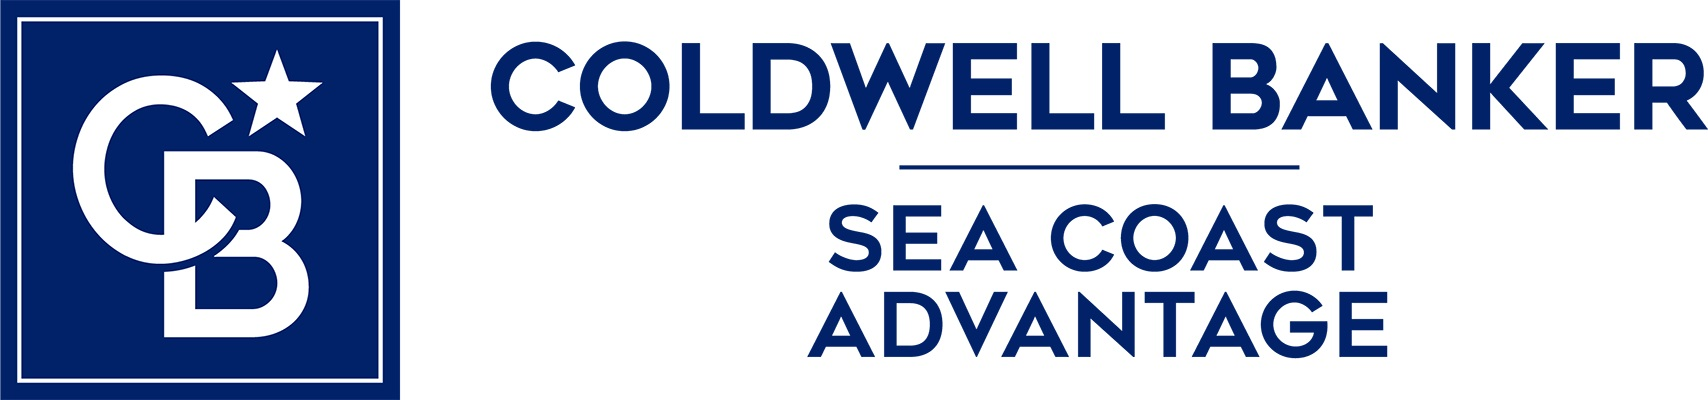 Linda Stephens - Coldwell Banker Sea Coast Advantage Realty